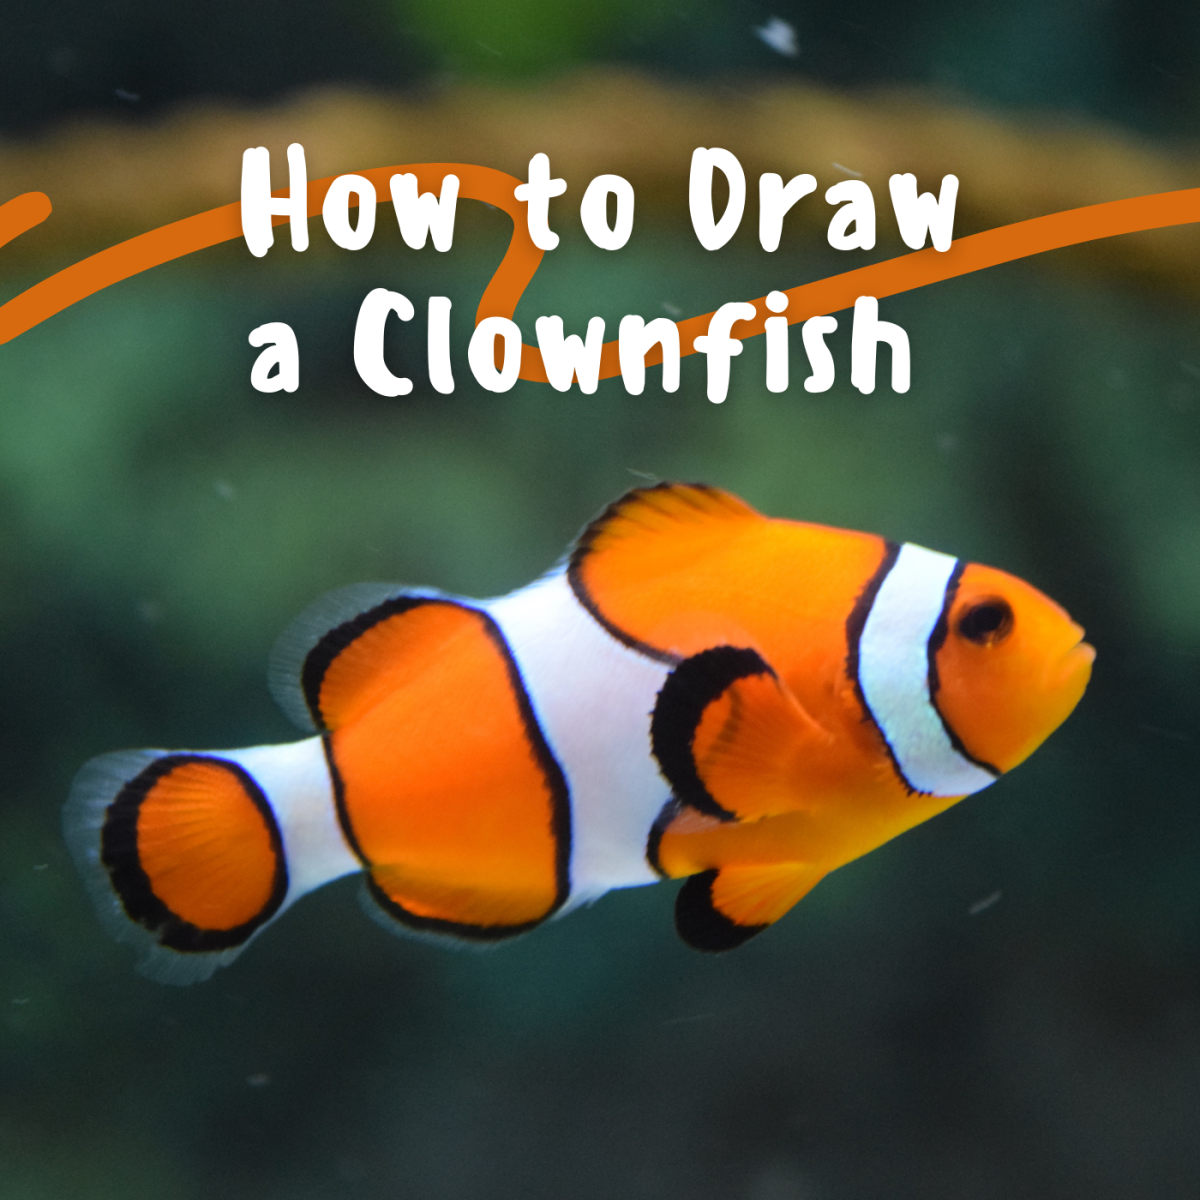 Learn how to make a clownfish drawing.